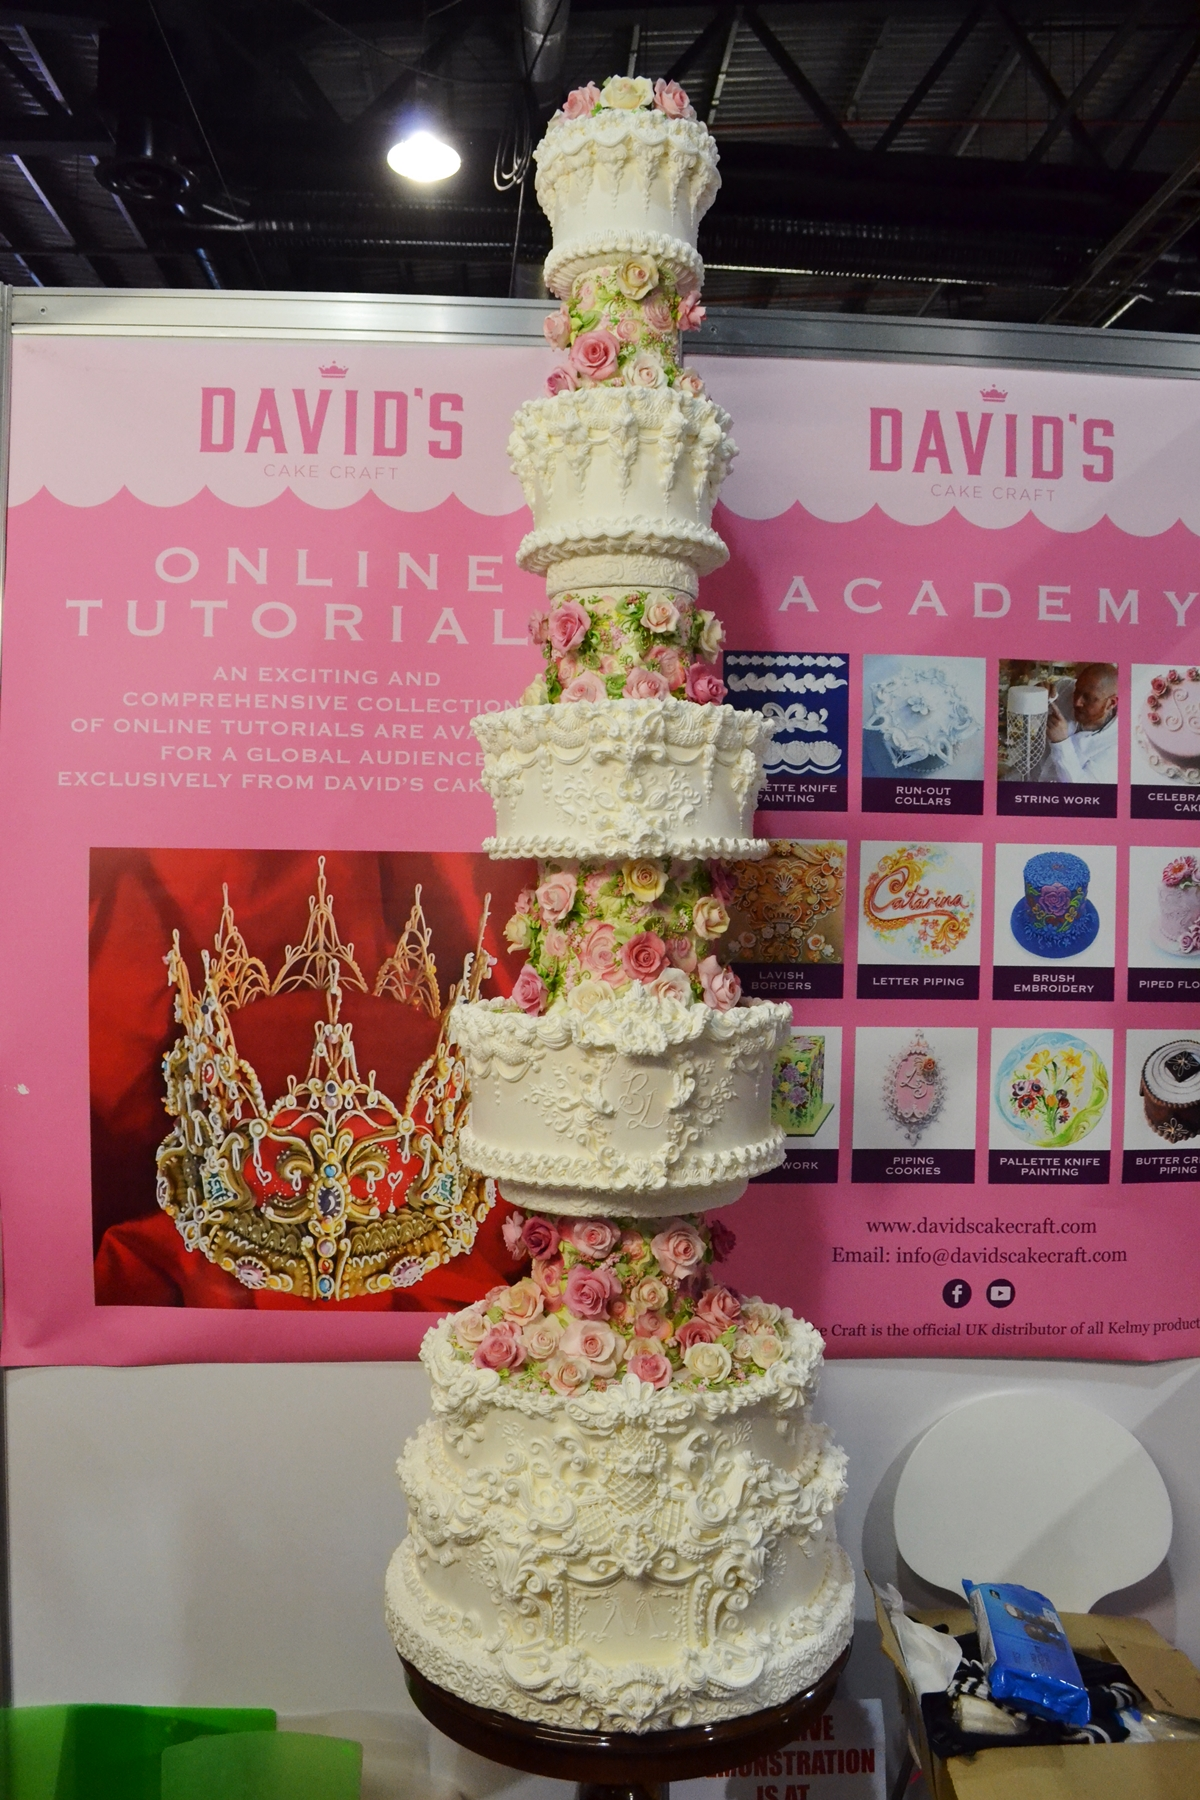 cake and bake show event city manchester 2016 giant wedding cake